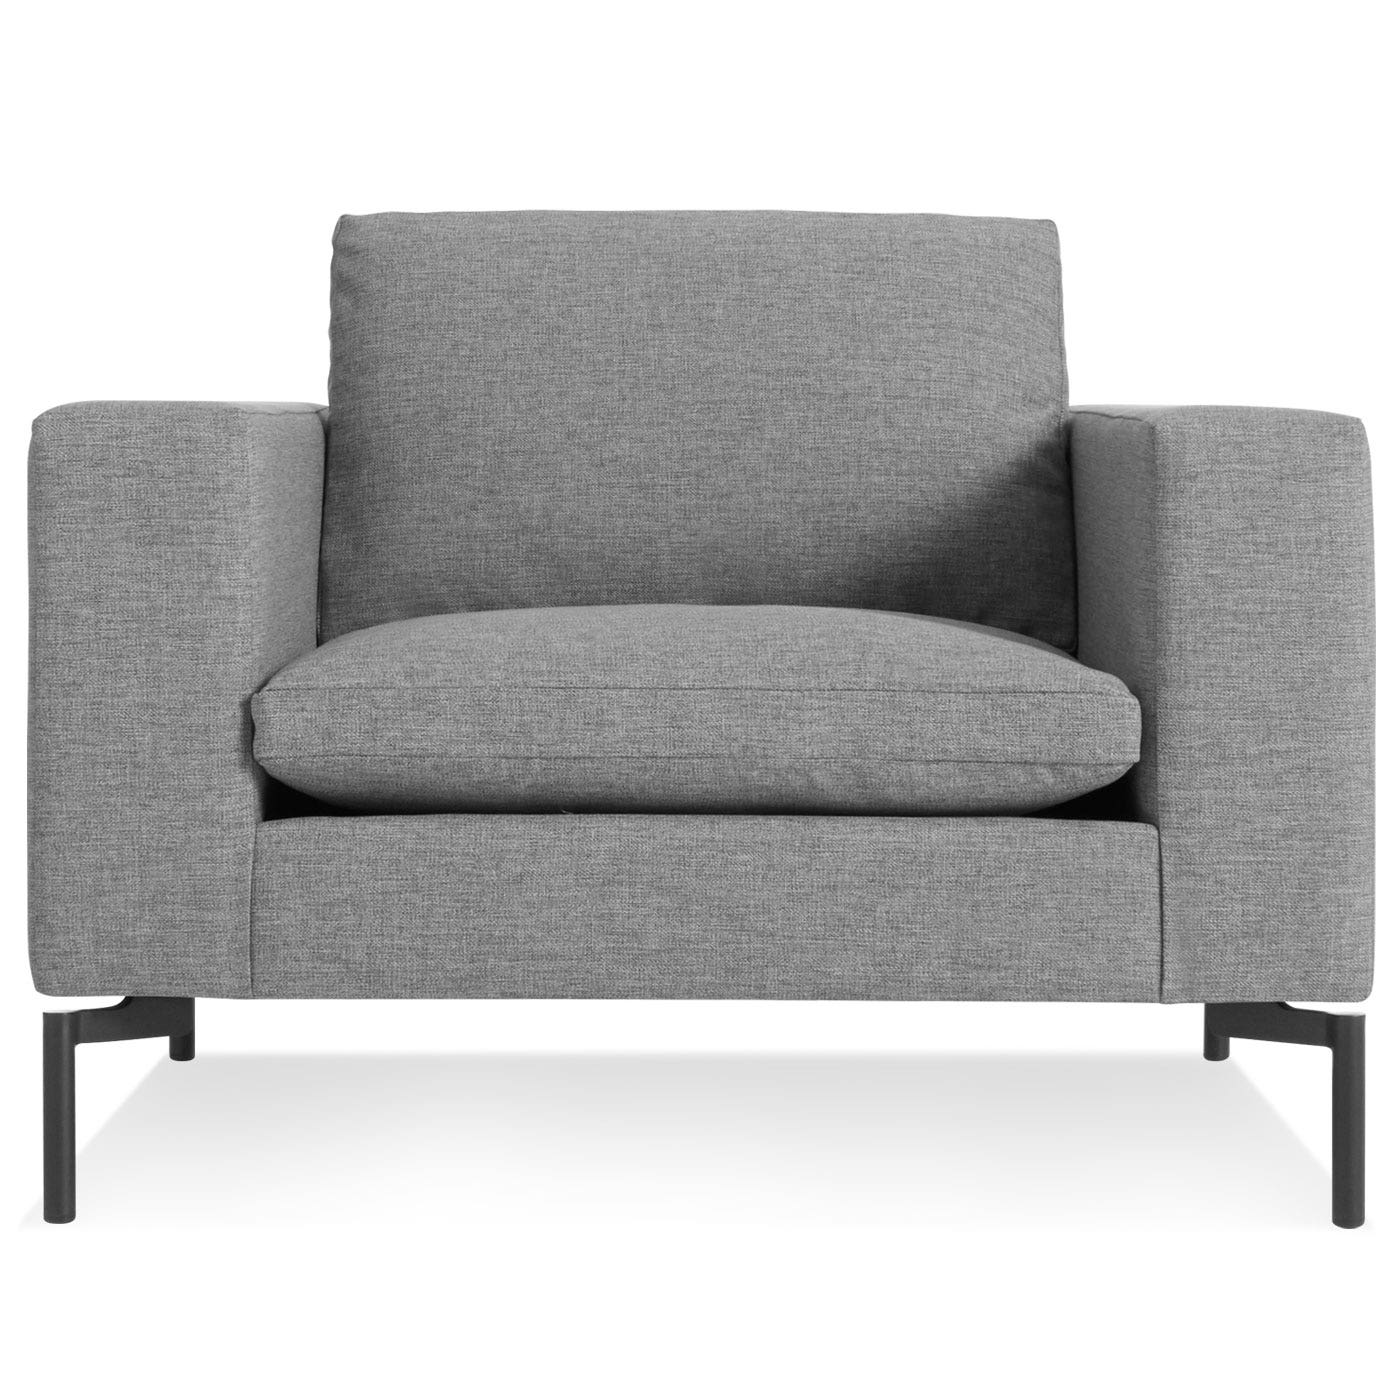 New Standard Lounge Chair Modern Chairs And Seating Bludot